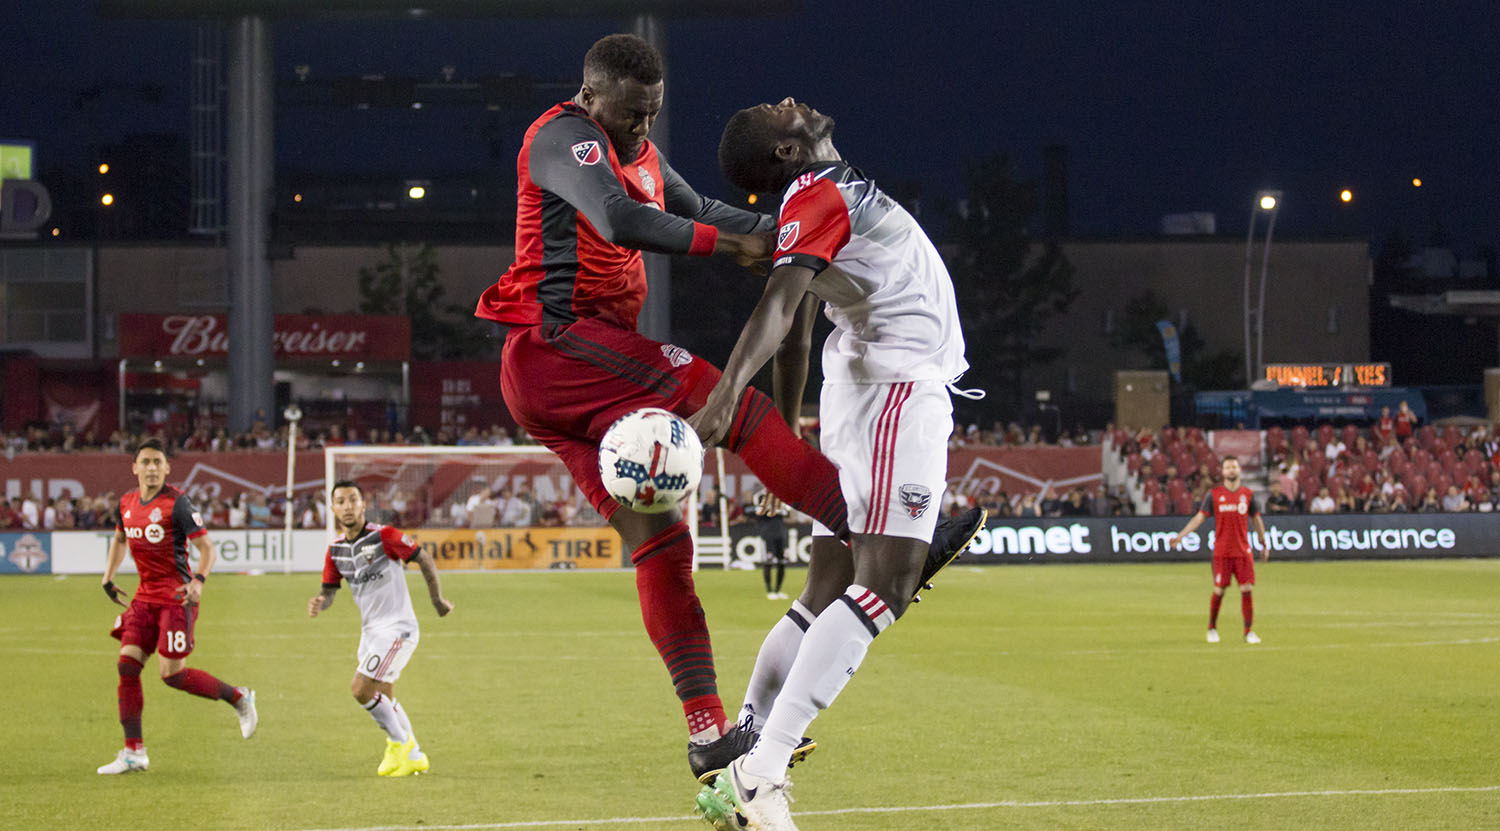 Jozy Altidore goes for the ball but ends up almost kicking a DC United player in a bad place. Image by Dennis Marciniak of denMAR Media.